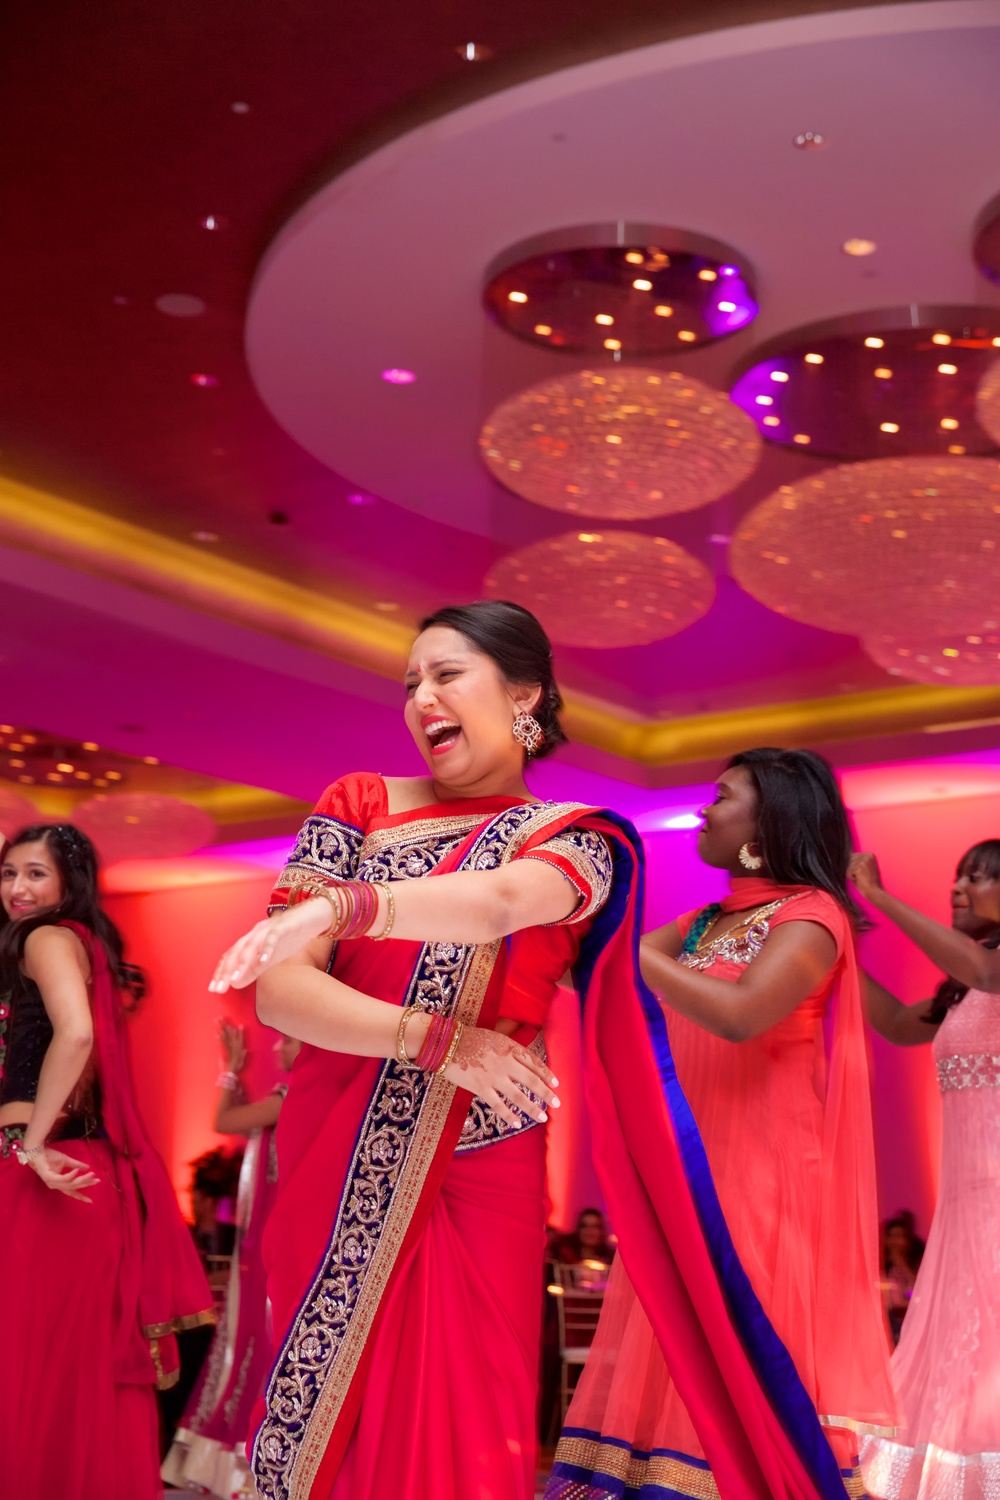 le cape weddings - indian wedding - day 4 - megan and karthik reception 156.jpg